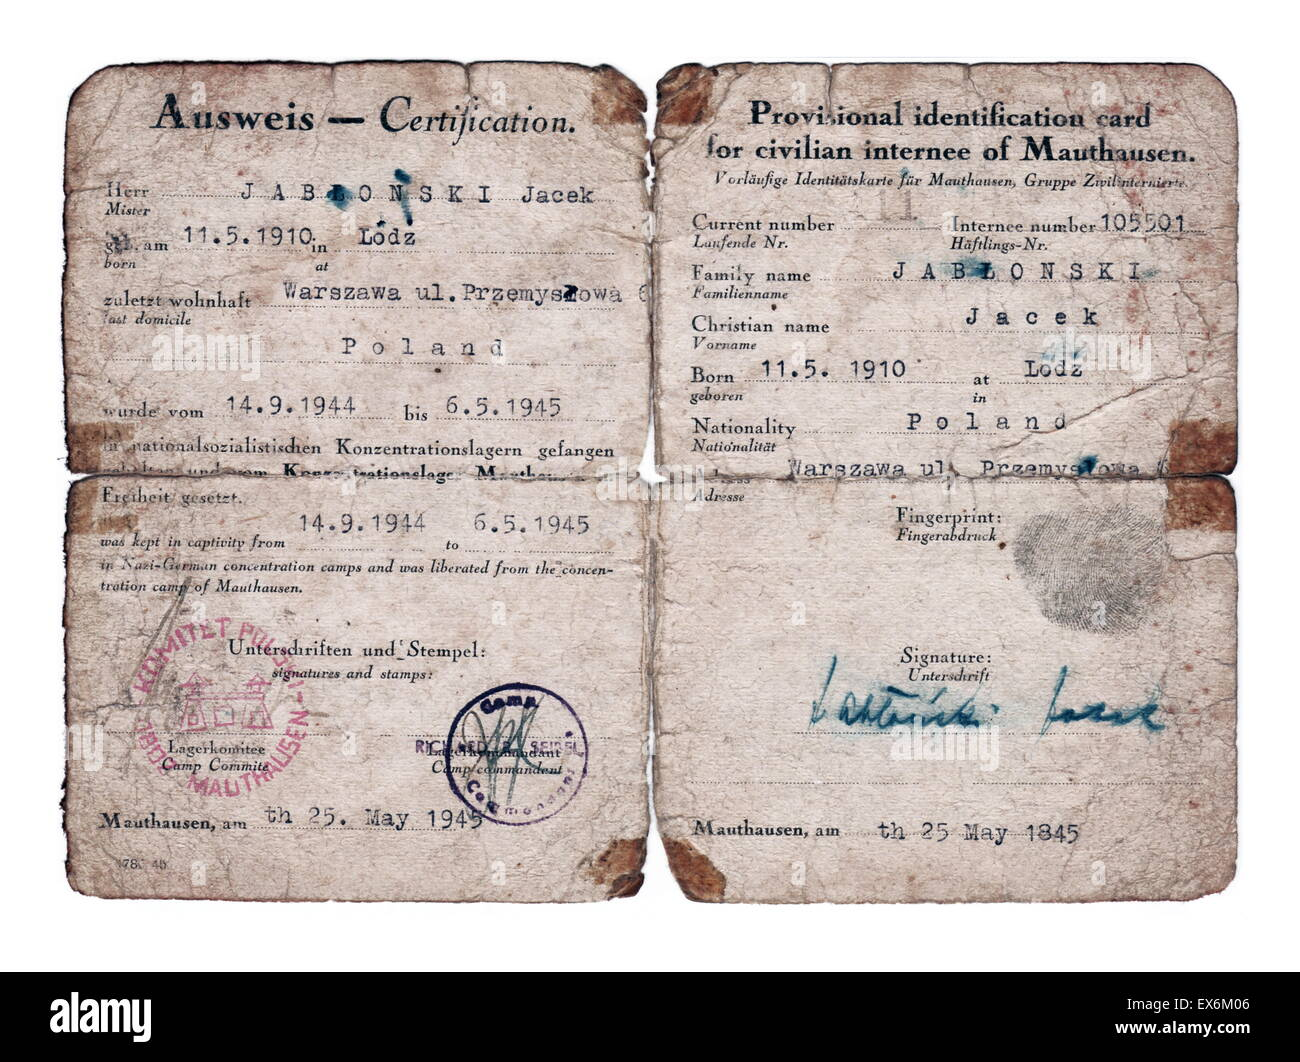 World War Two; Post-liberation identification paper for a former Mauthausen Concentration Camp prisoner called Jacek - Stock Image